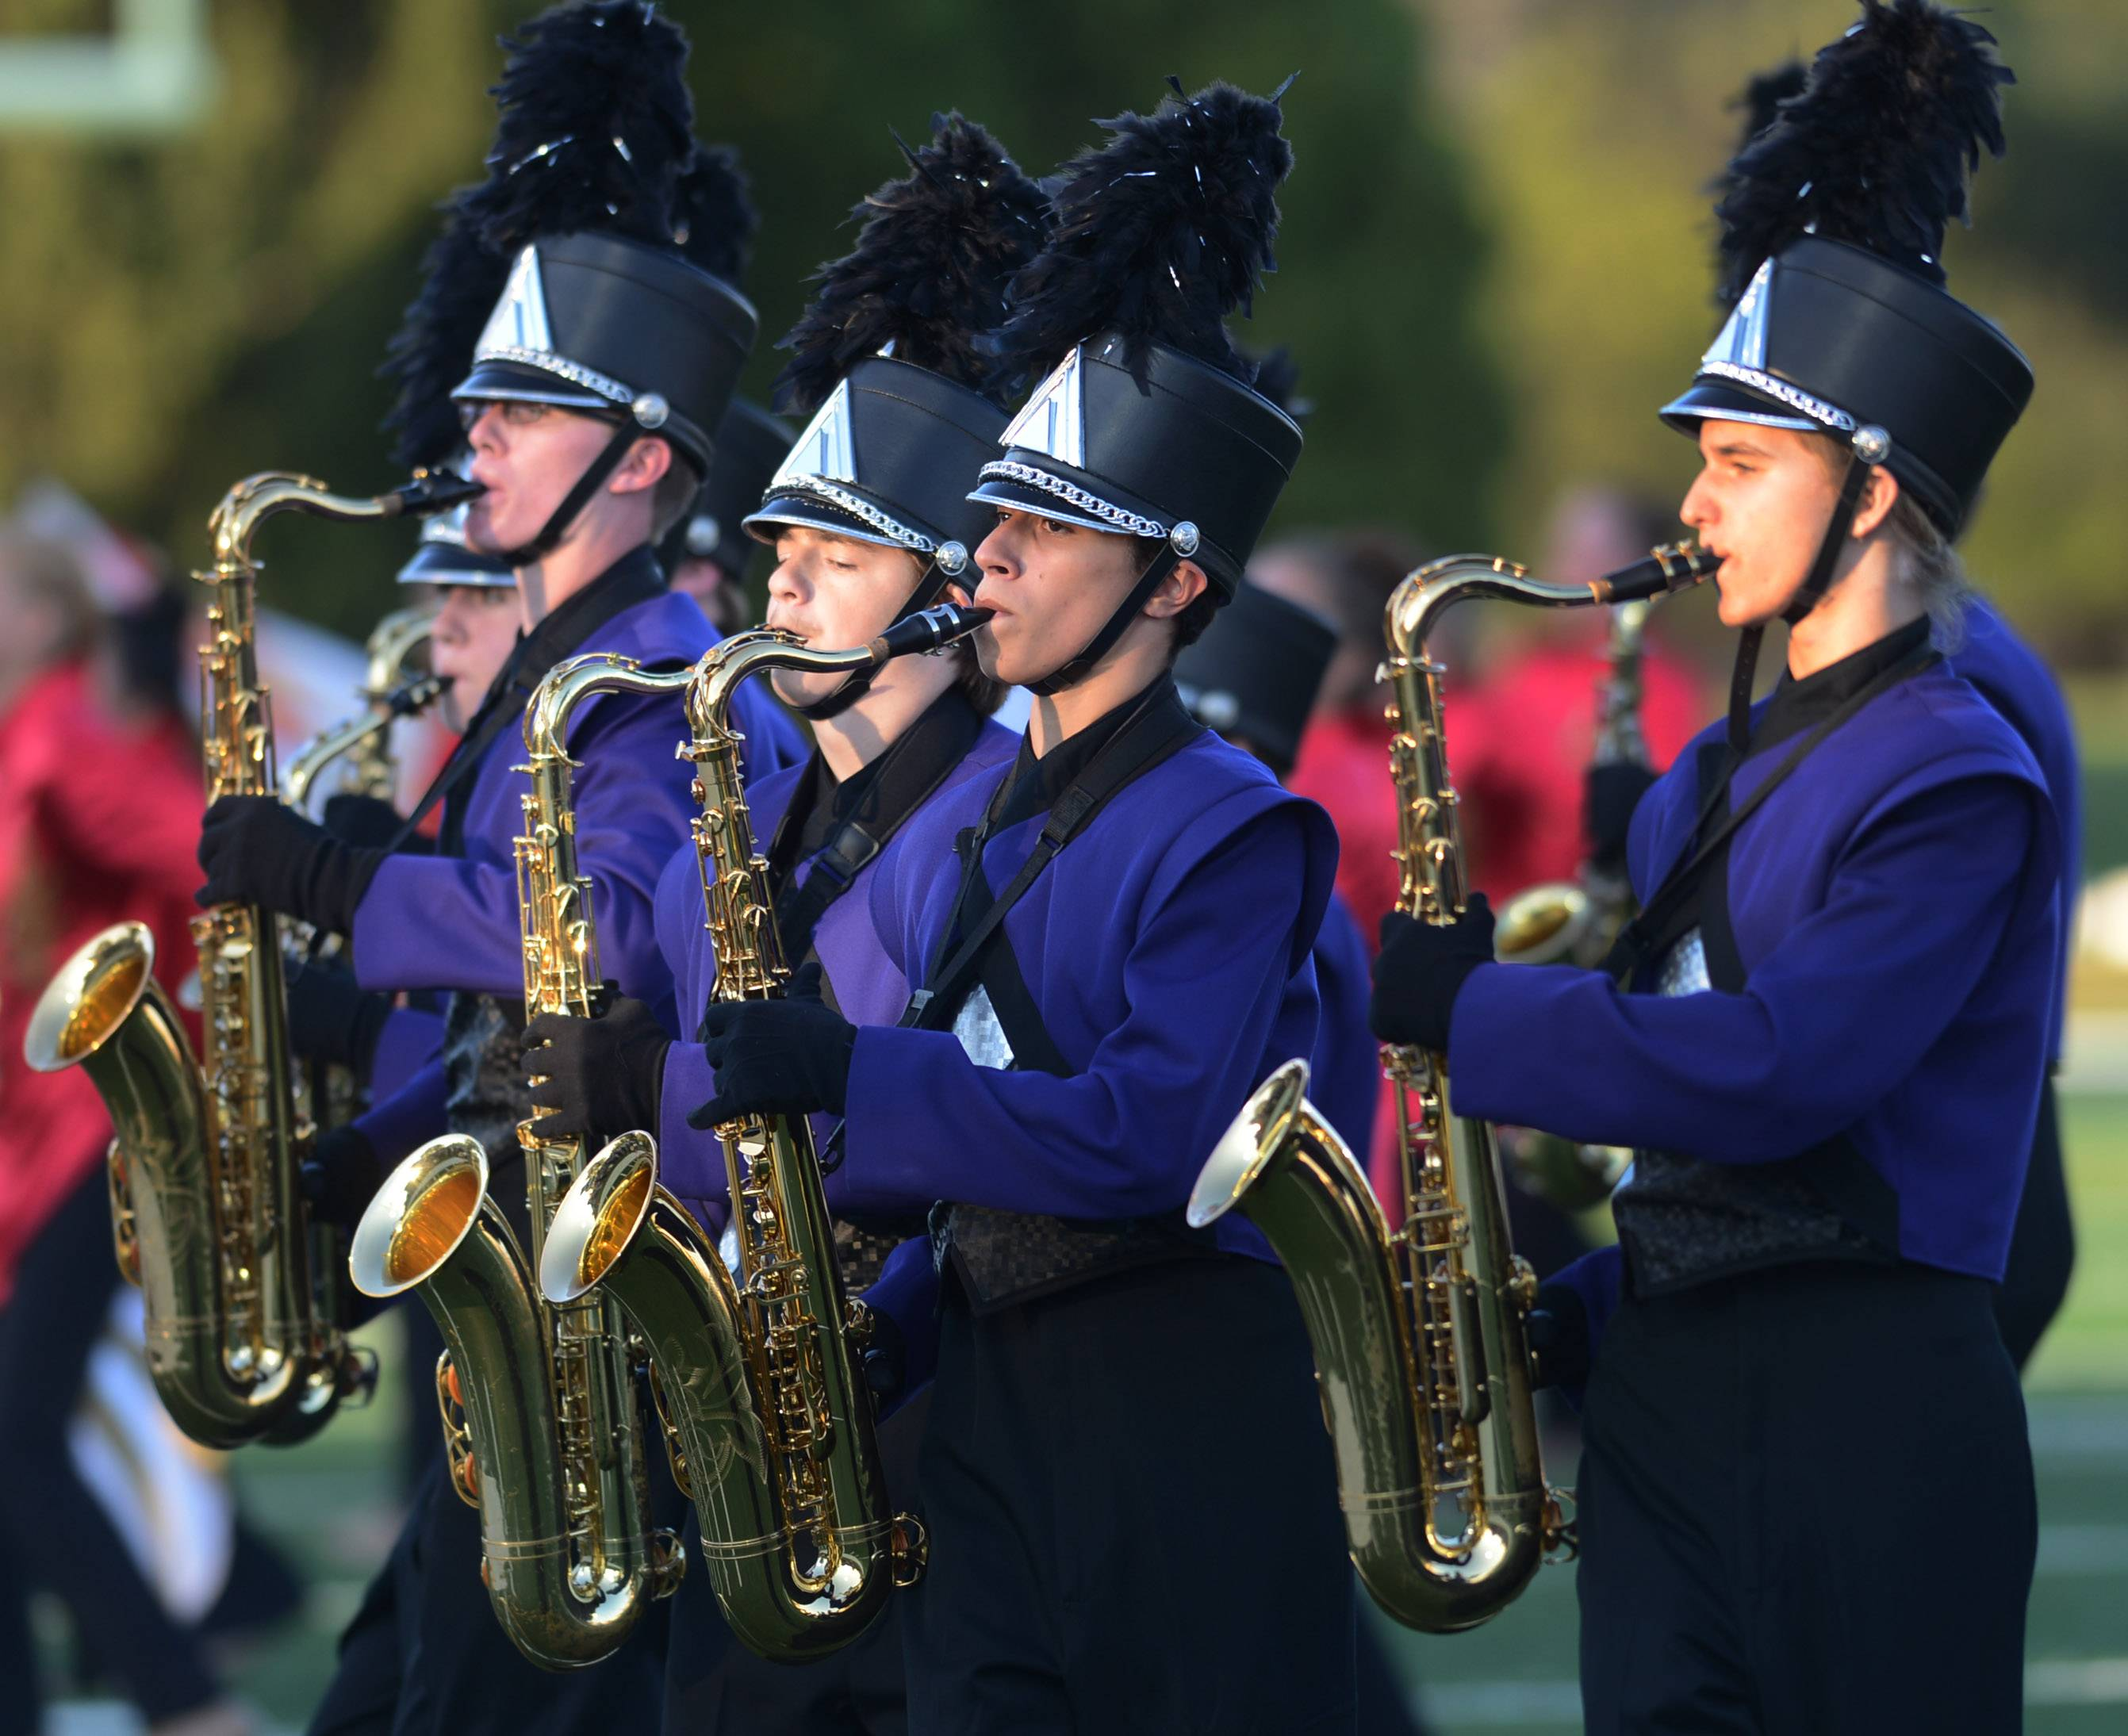 The Rolling Meadows High School Marching Band performs during the 47th annual Chicagoland Marching Band Festival hosted by Wheeling High School Saturday.